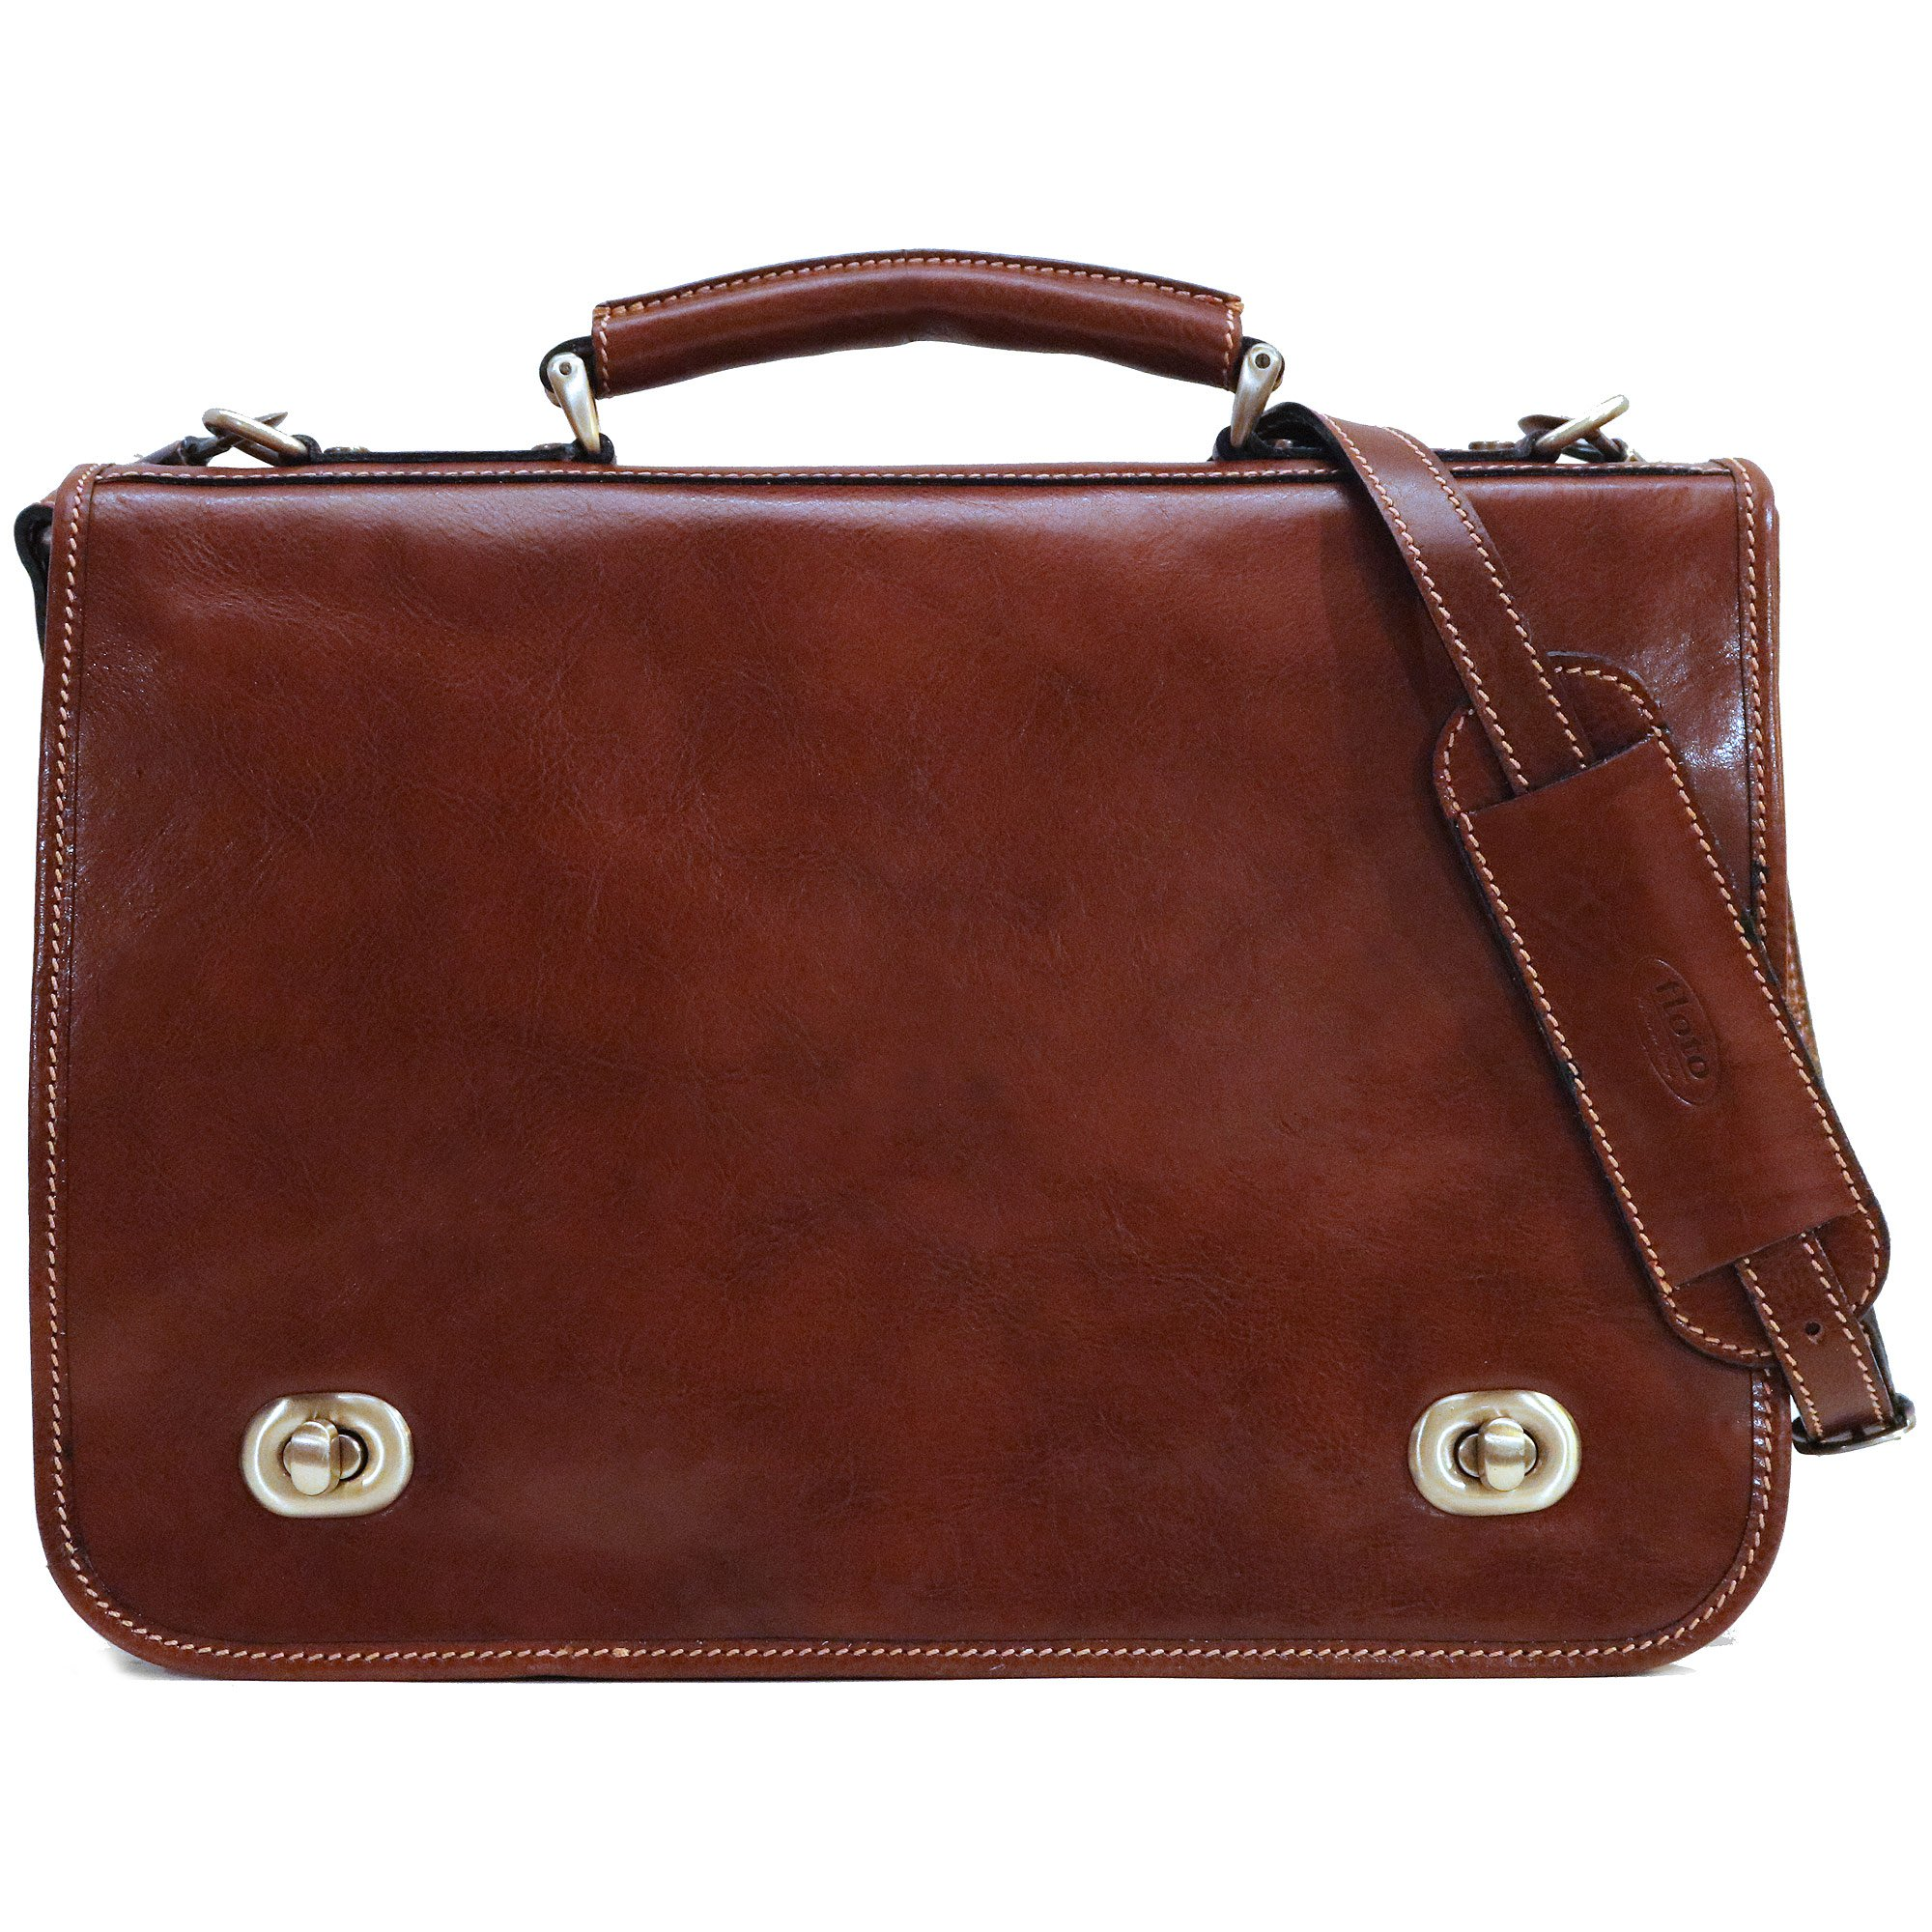 Floto Luggage Roma Messenger Bag, Brown, One Size